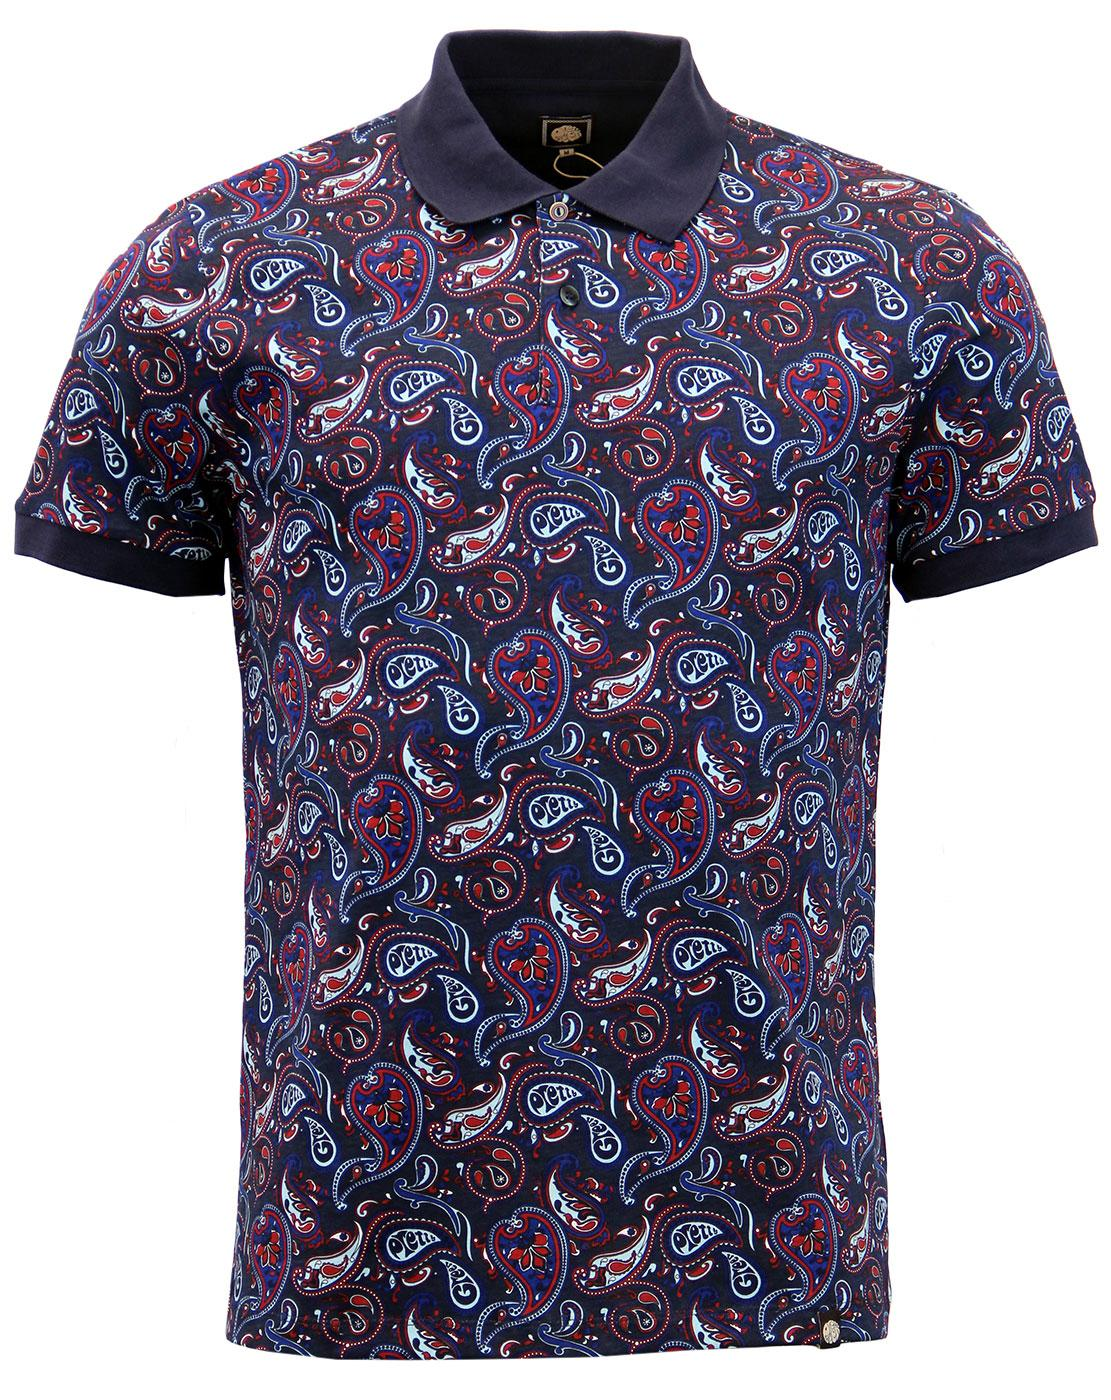 Sefton PRETTY GREEN Mod Psychedelic Paisley Polo